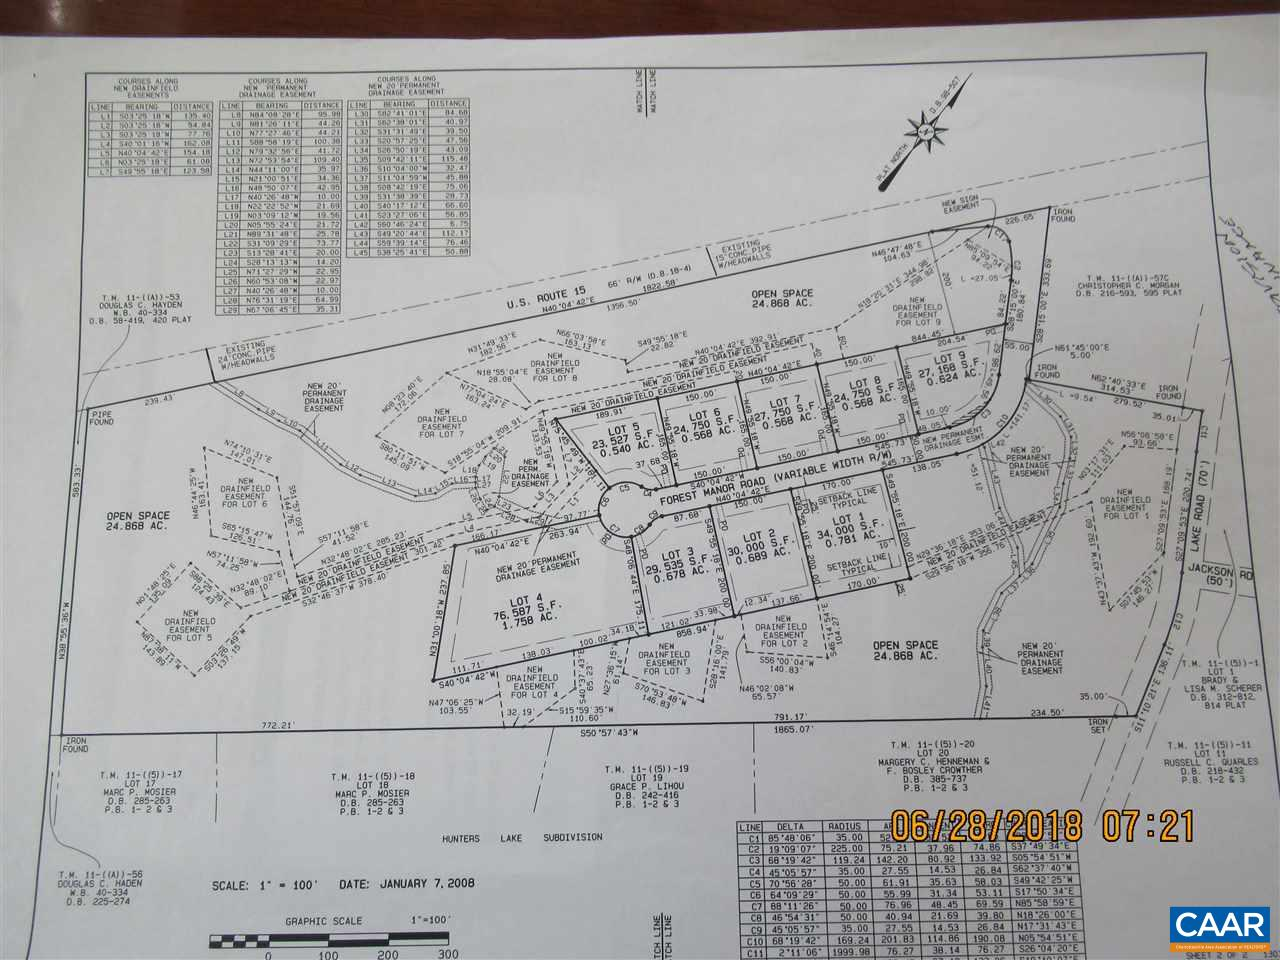 land for sale , MLS #578483, 10 James Madison Hwy